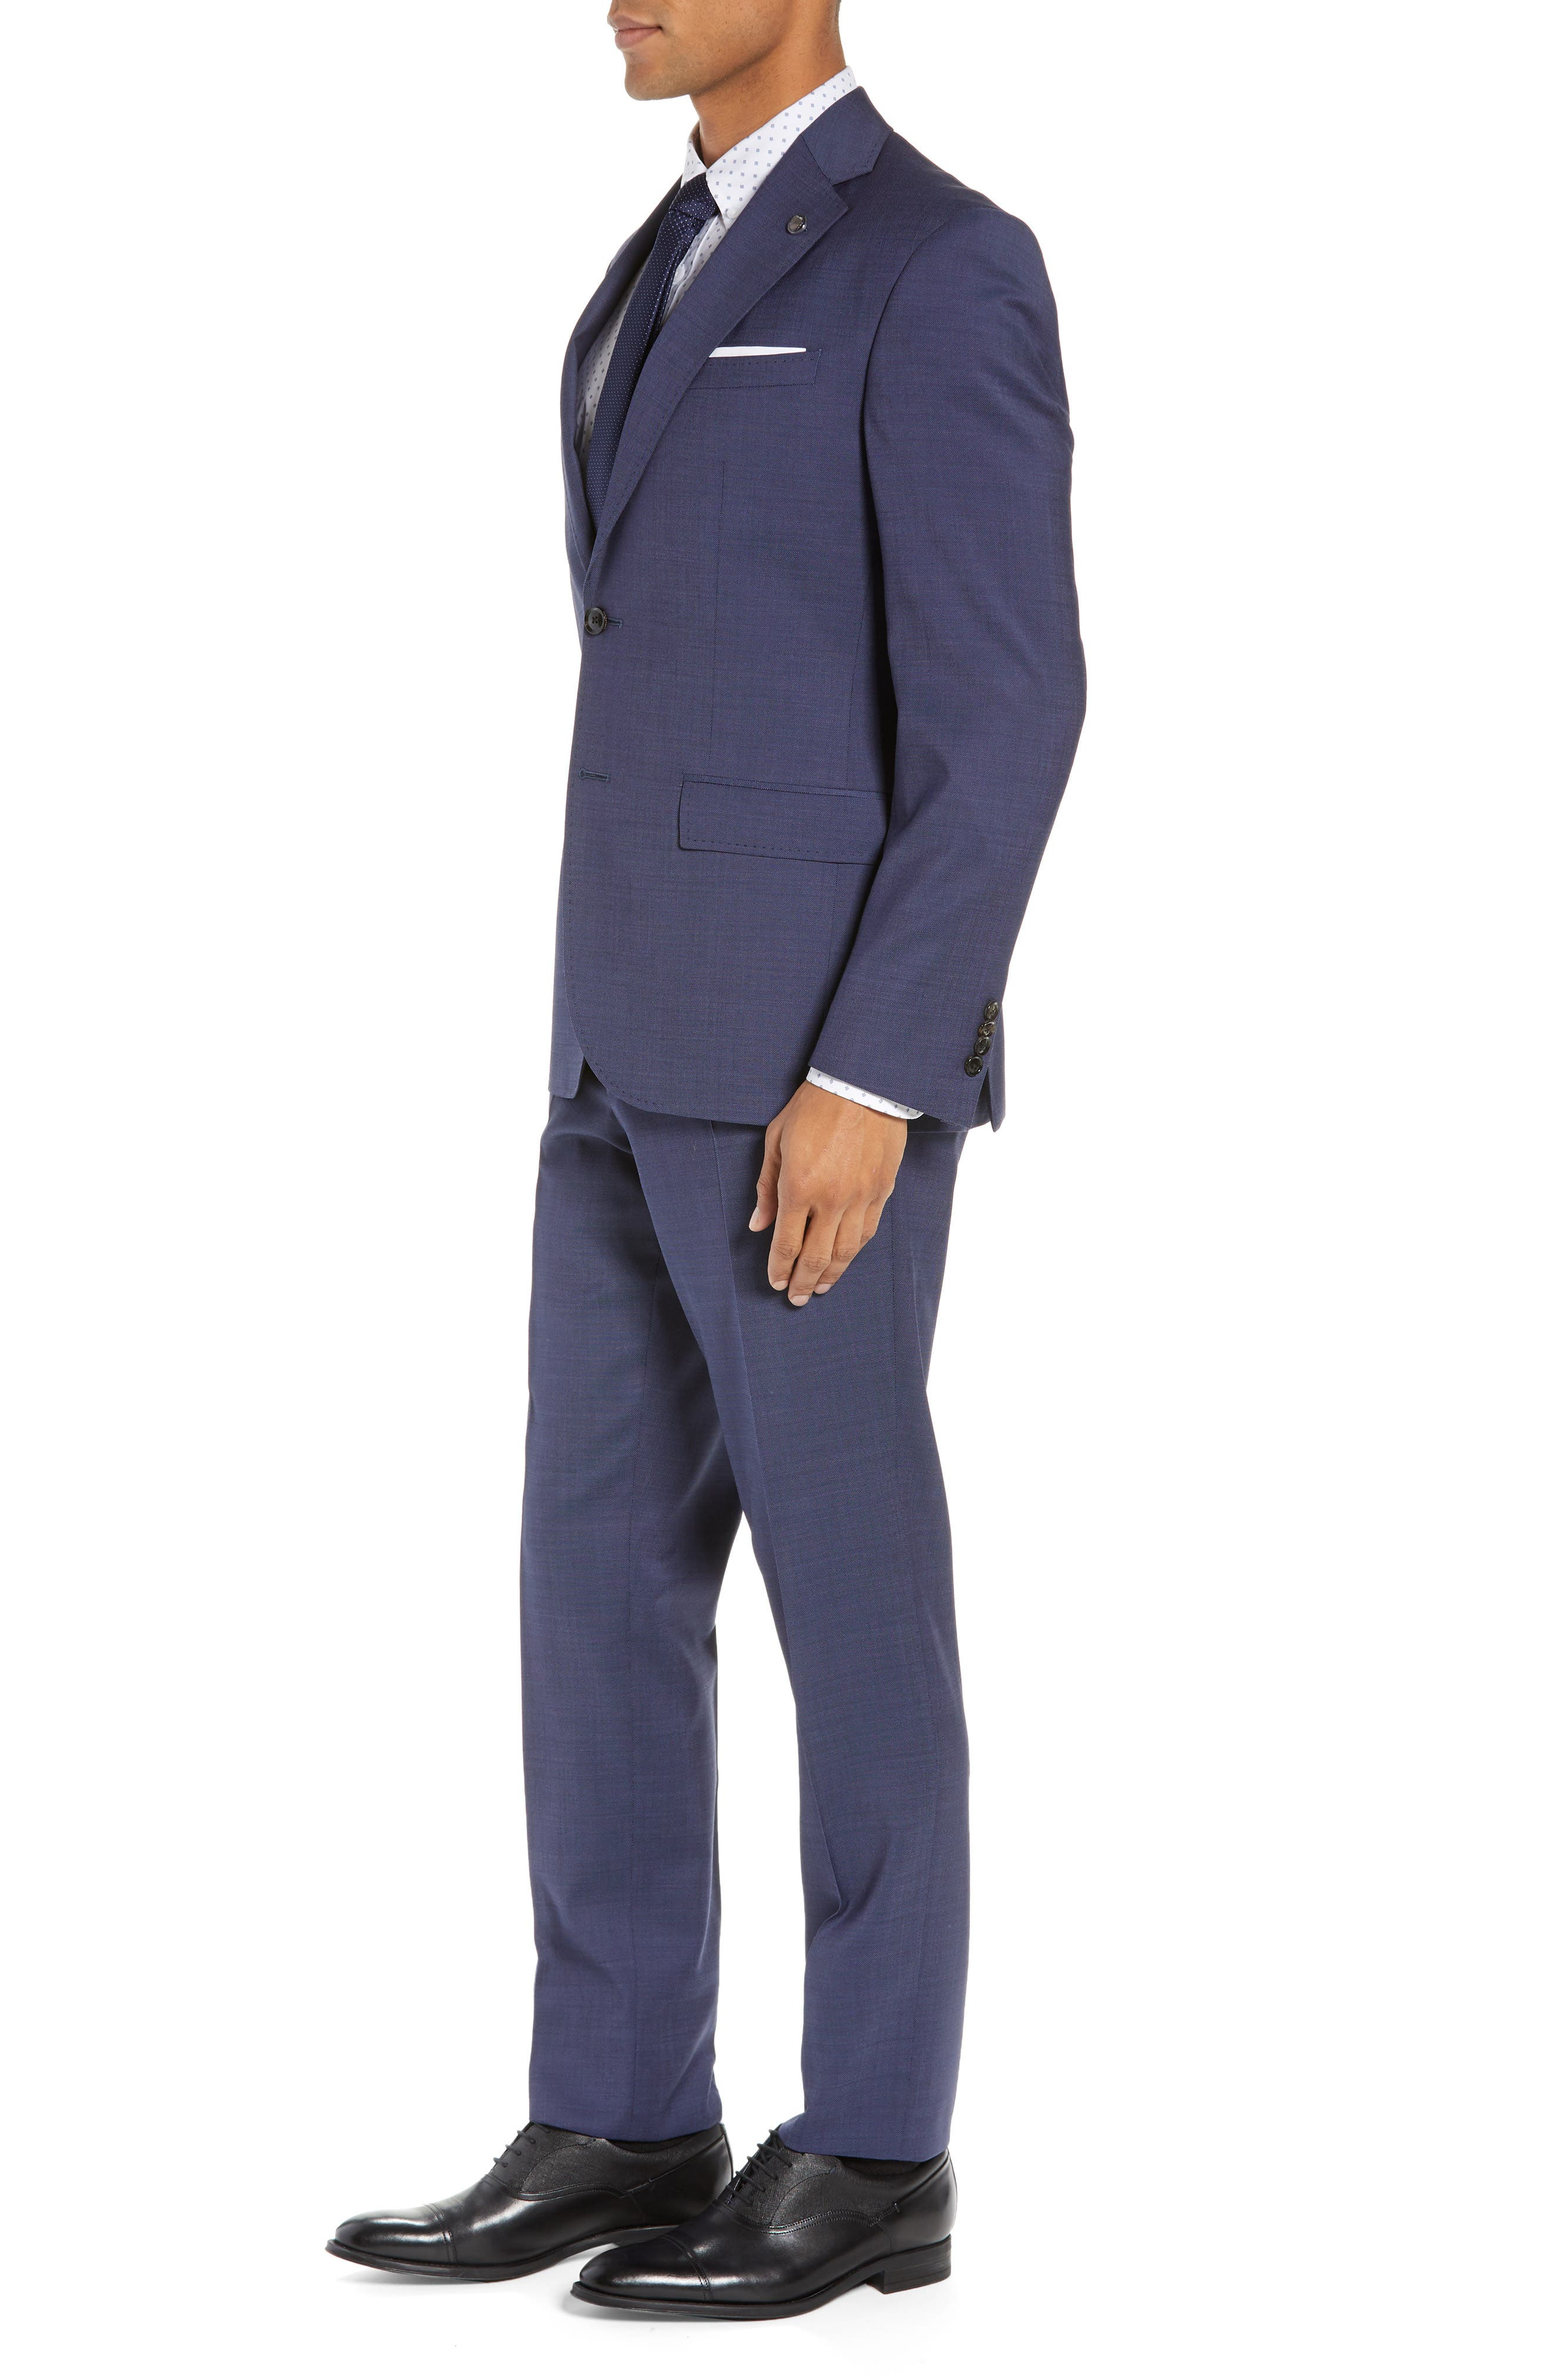 TED BAKER LONDON, Roger Slim Fit Solid Wool Suit, Alternate thumbnail 3, color, BLUE